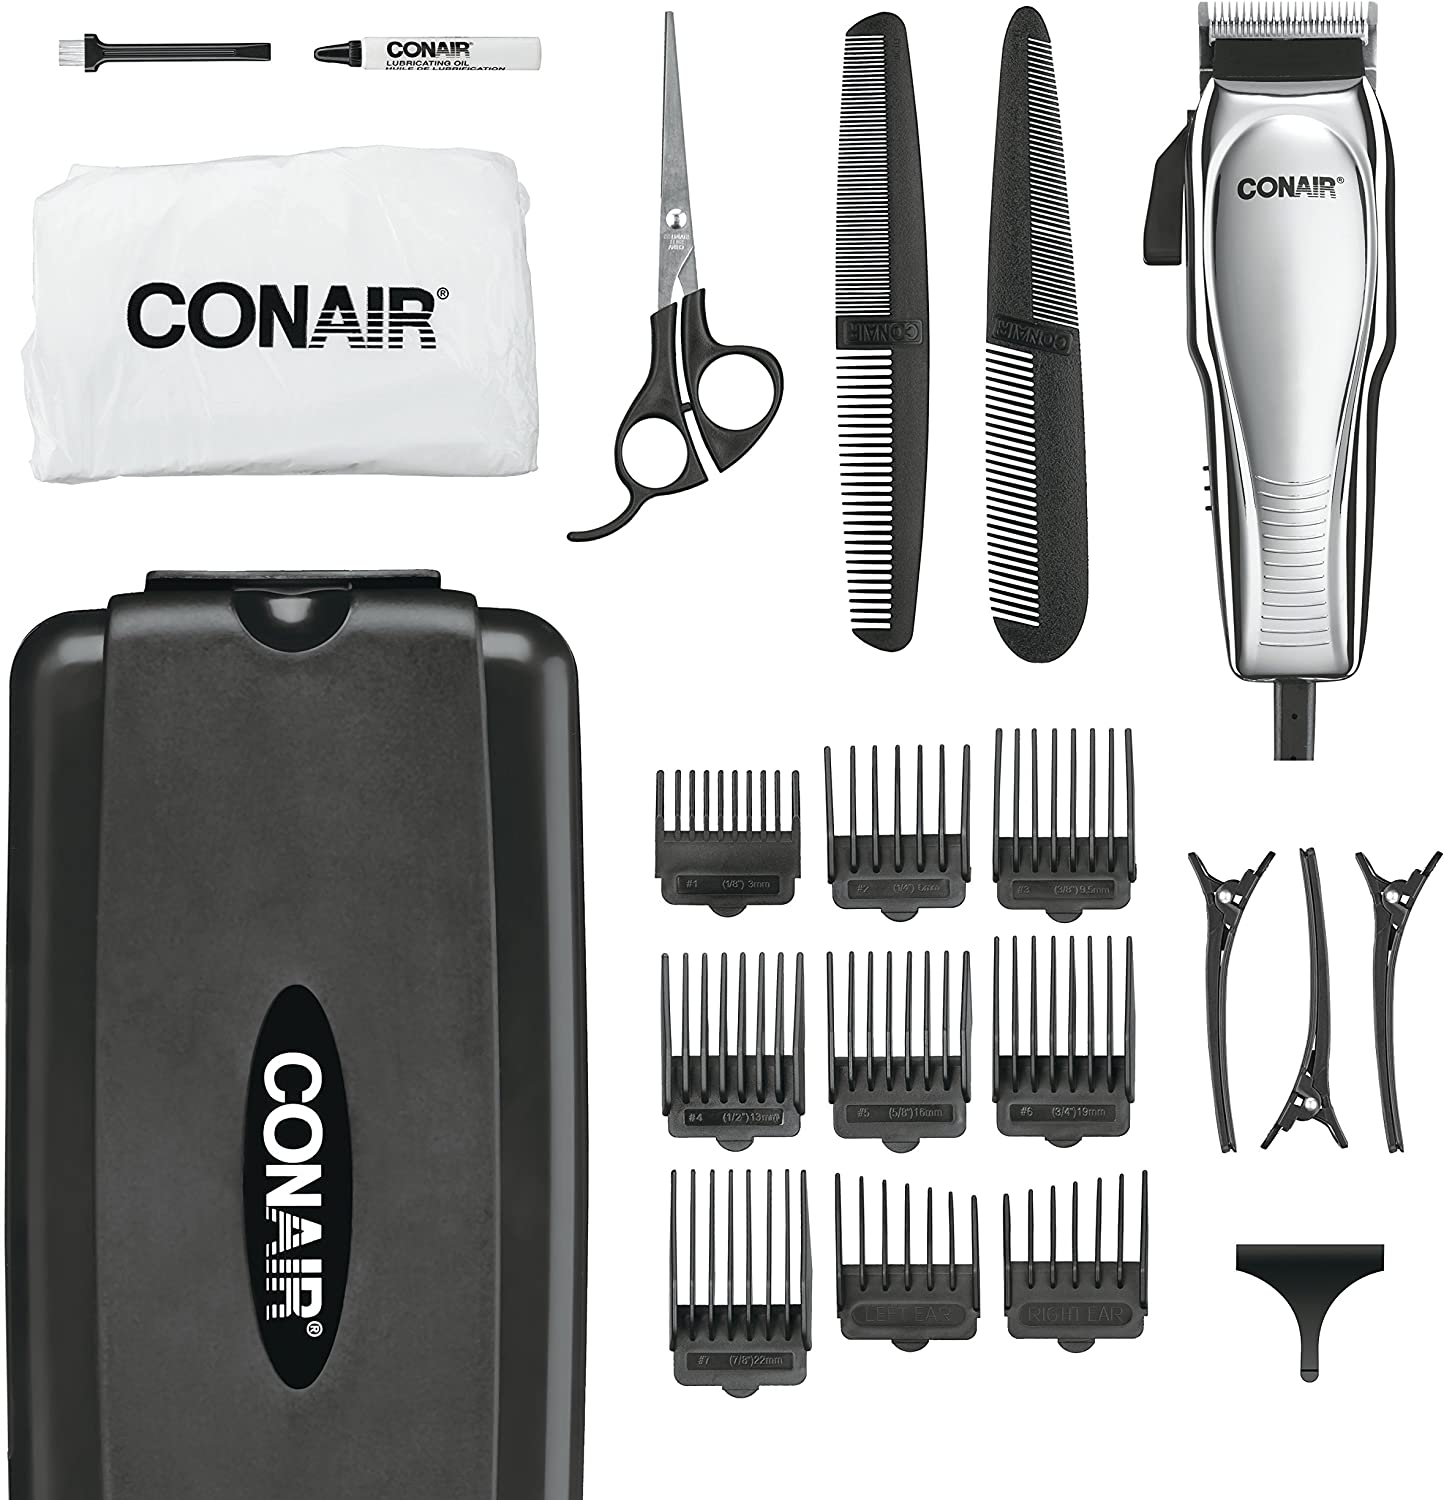 Conair Custom Cut 11-piece Haircut Kit; Home Hair Cutting Kit; Chrome